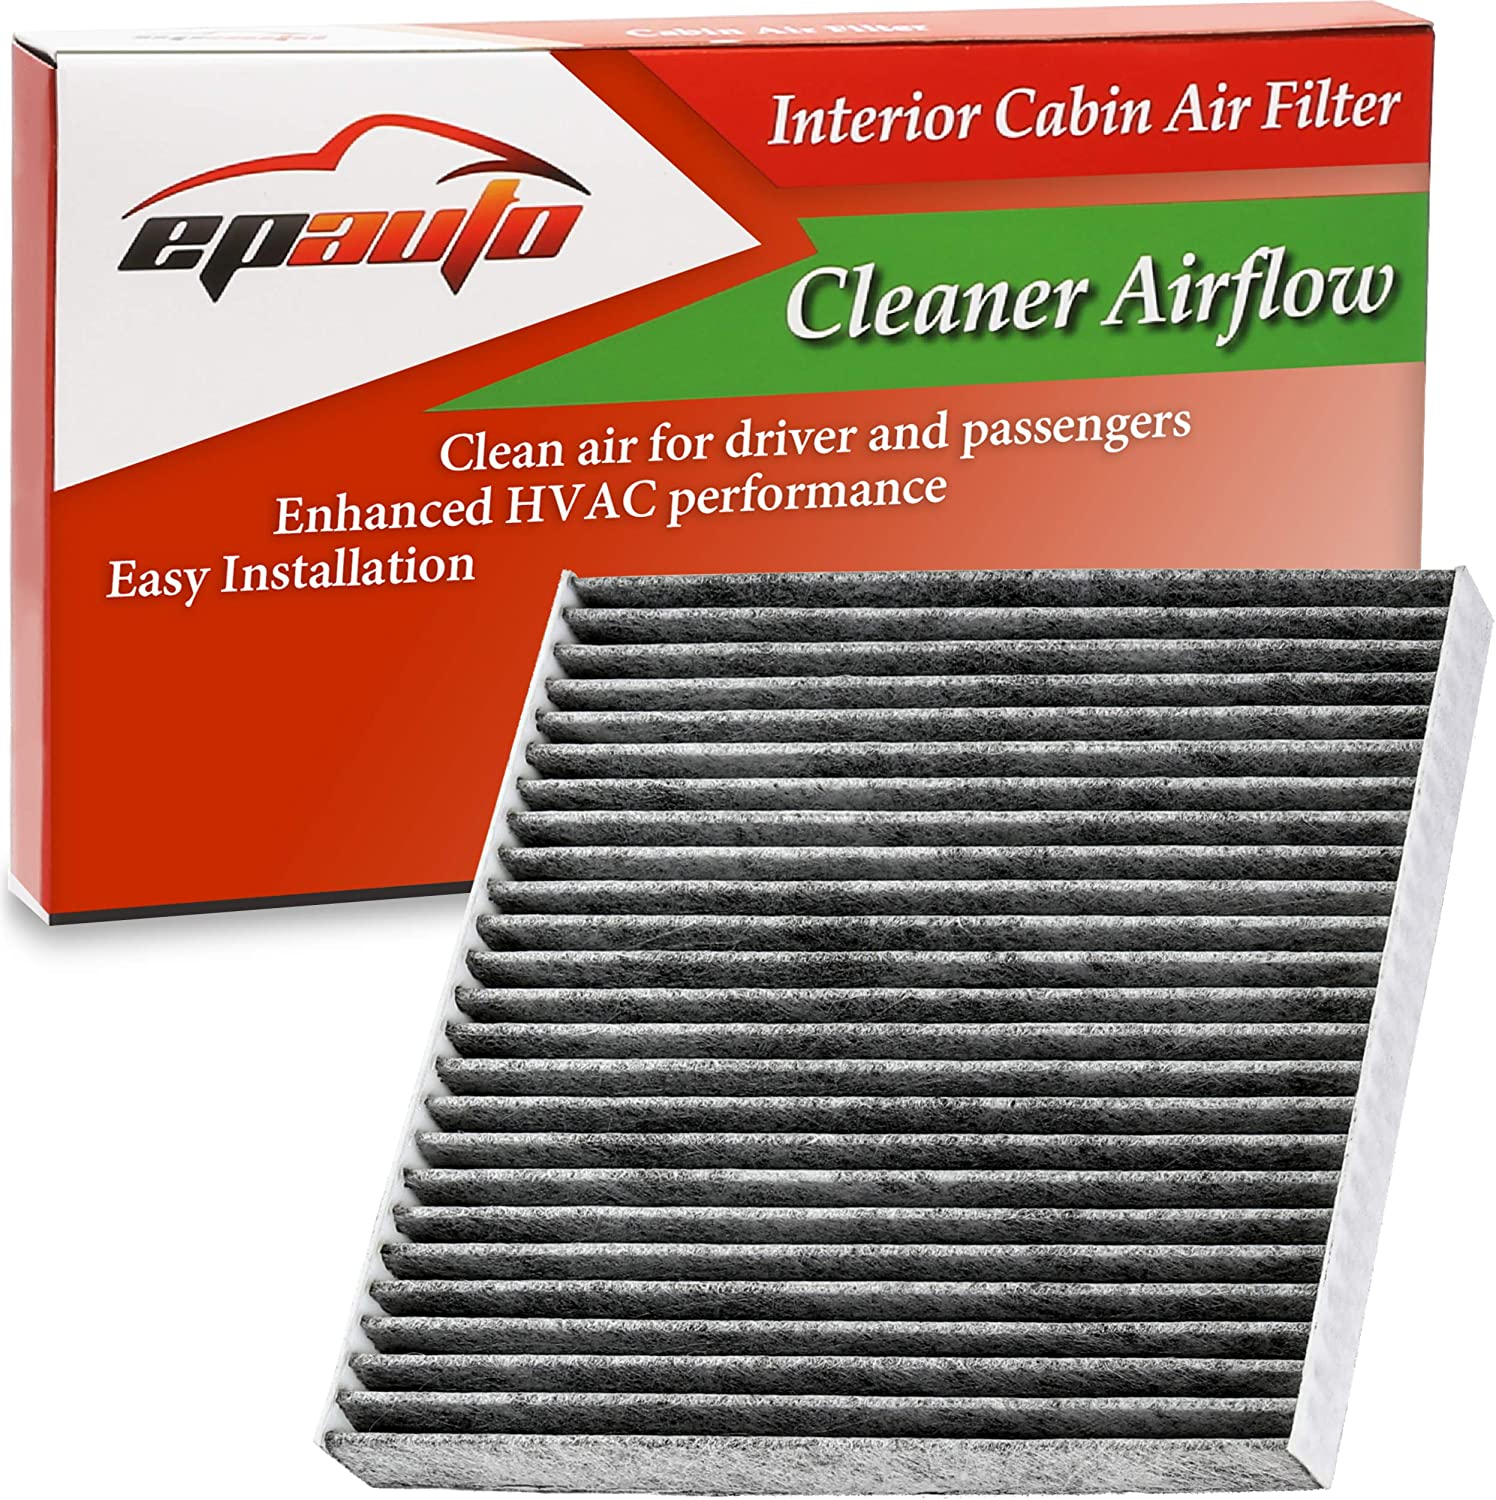 Amazon Com Epauto Cp671 Cf11671 Replacement For Mazda Cx 7 Ram 1500 2500 3500 4500 5500 Cabin Air Filter Includes Activated Carbon Automotive